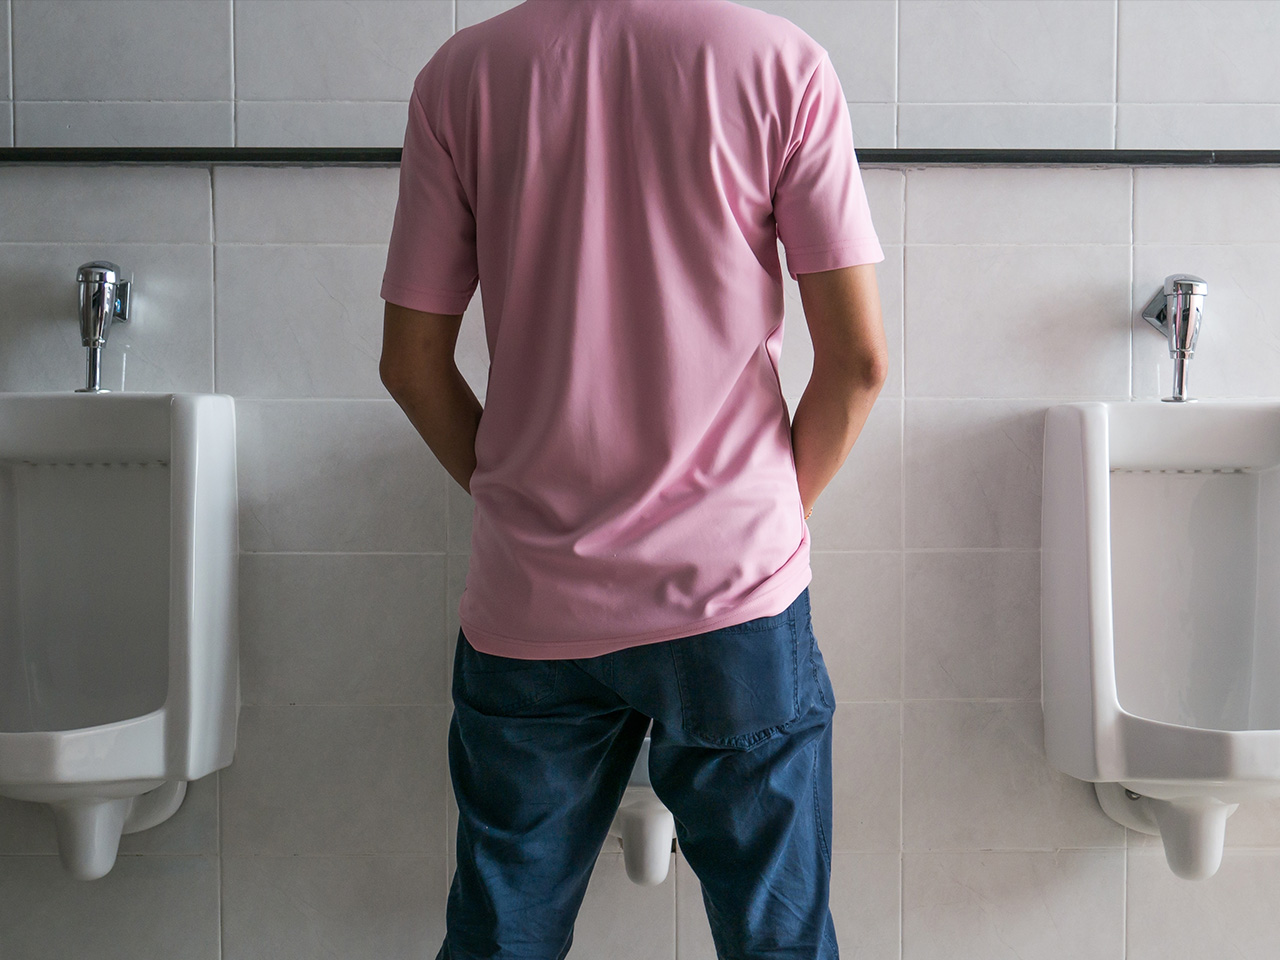 7 Tips for a Healthy Prostate